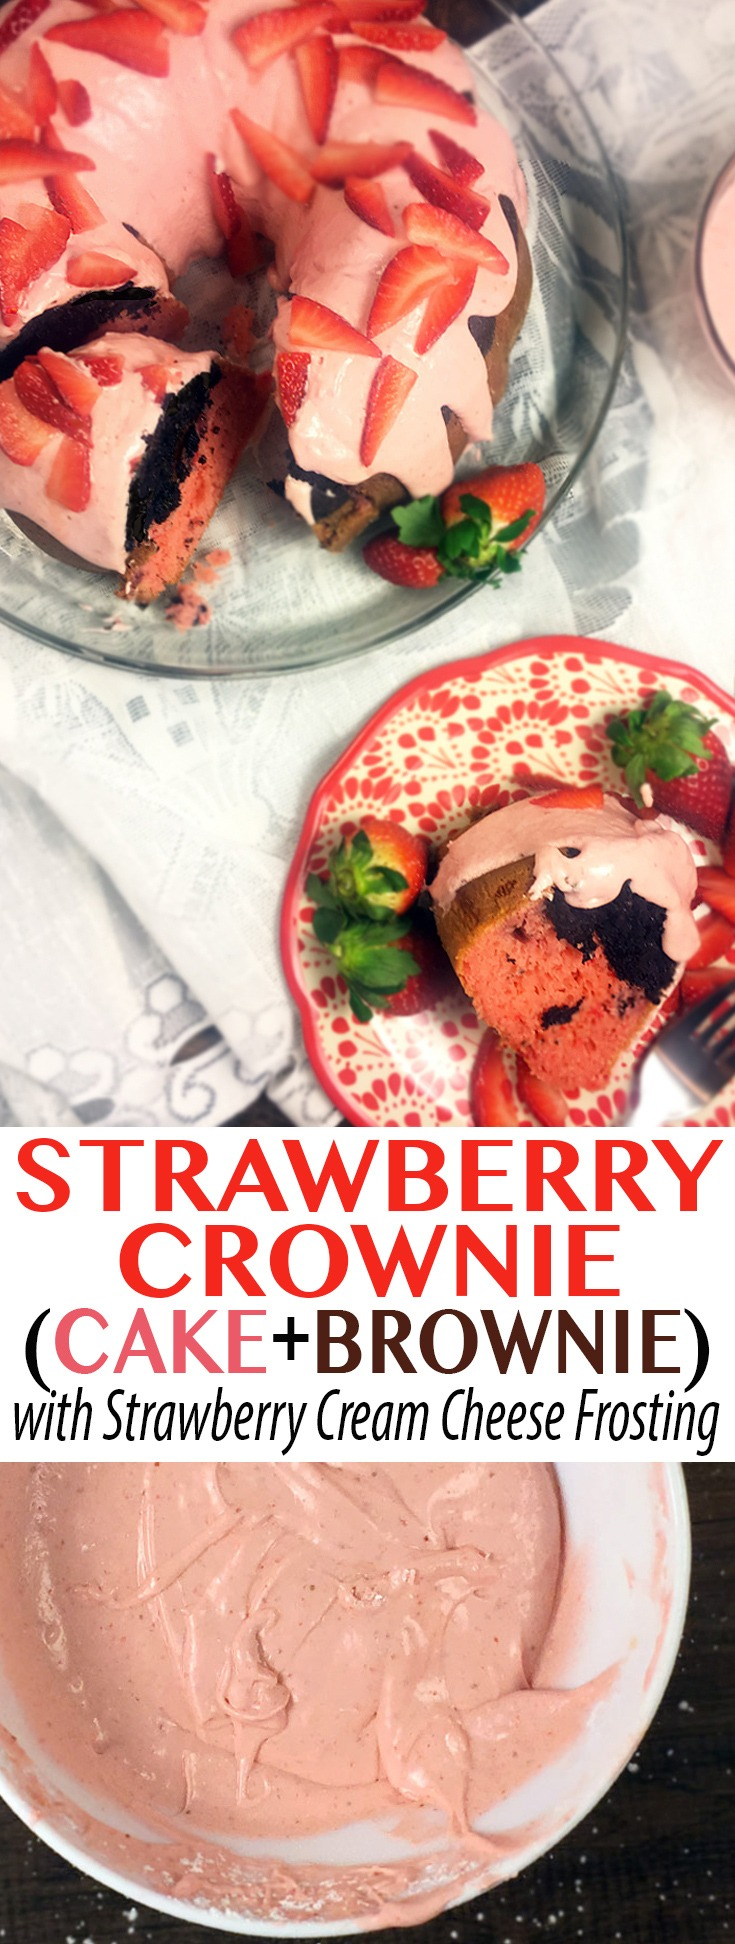 Strawberry Crownie! A strawberry cake and brownie baked together in a Bundt pan and topped with Strawberry Cream Cheese Icing.